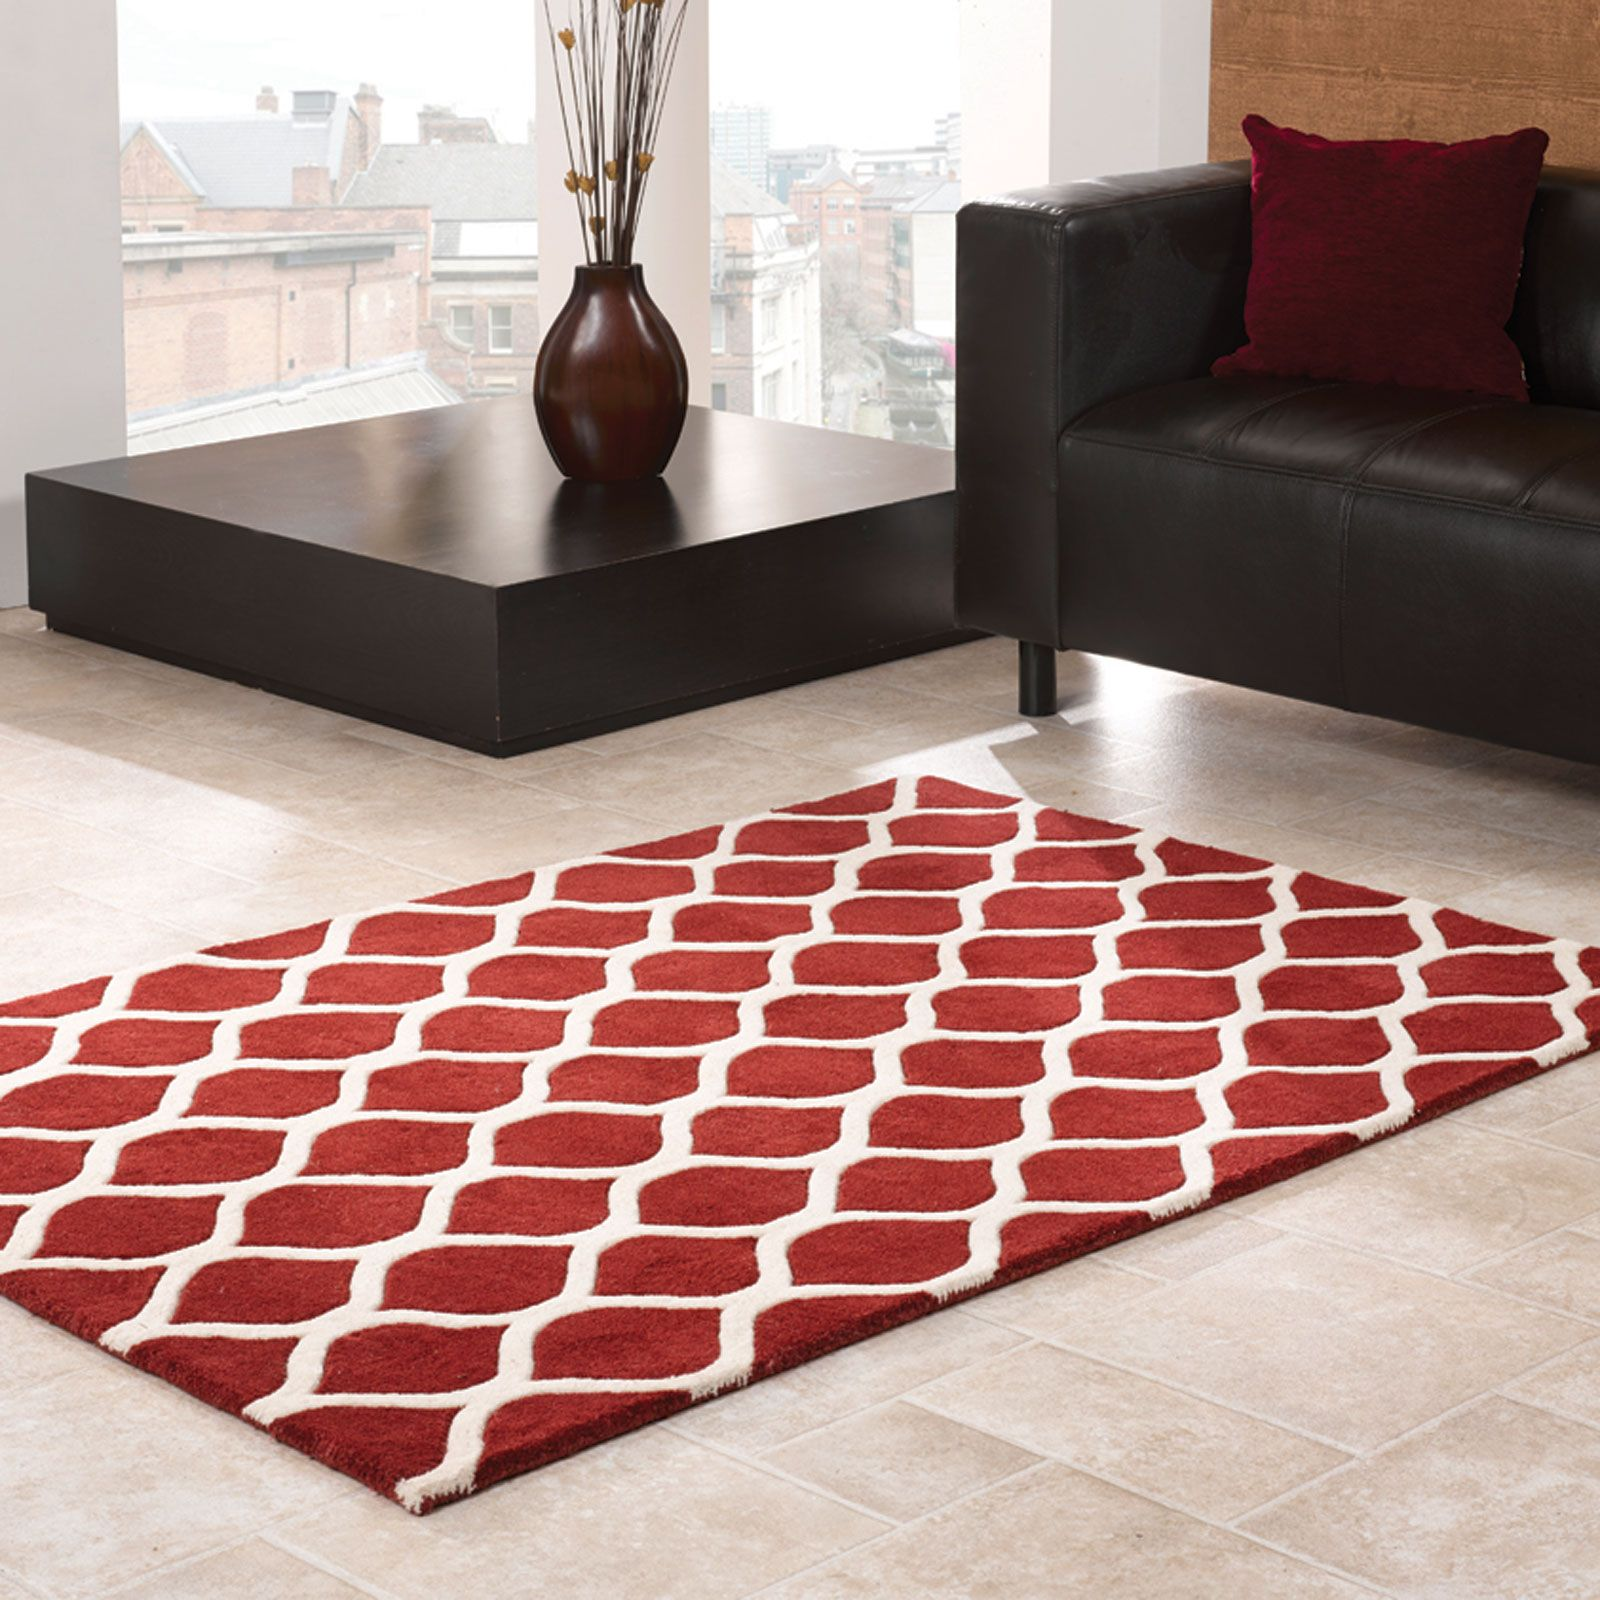 Moorish Fes Rugs Have A Moroccan Inspired Design That Has Been Hand Carved Giving